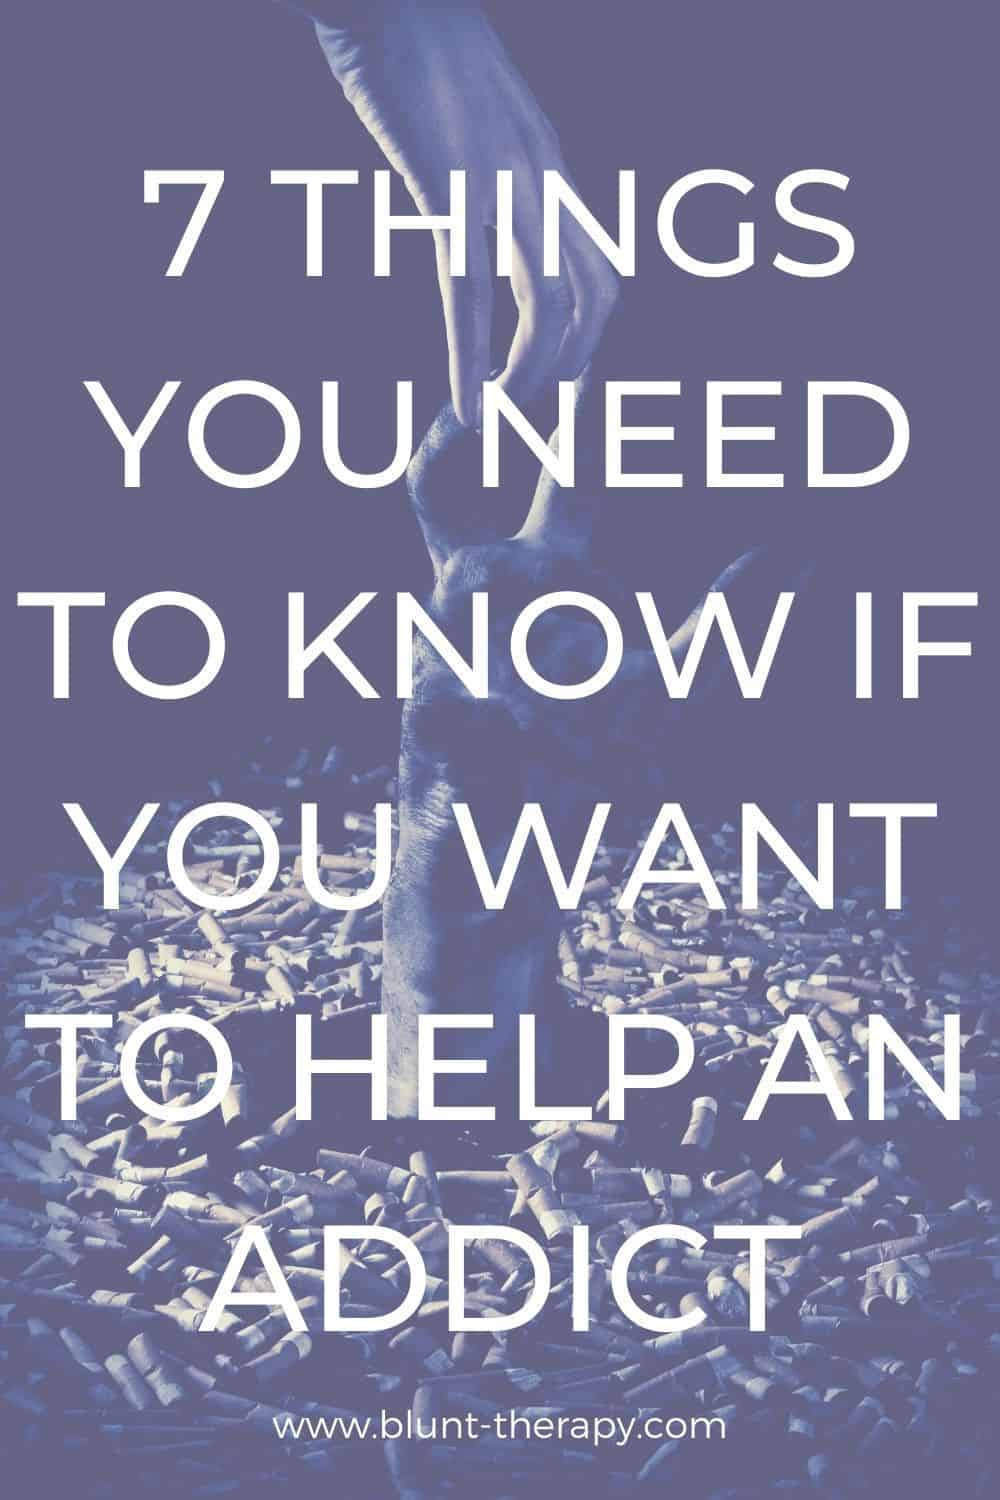 7 Things You Need To Know If You Want To Help An Addict